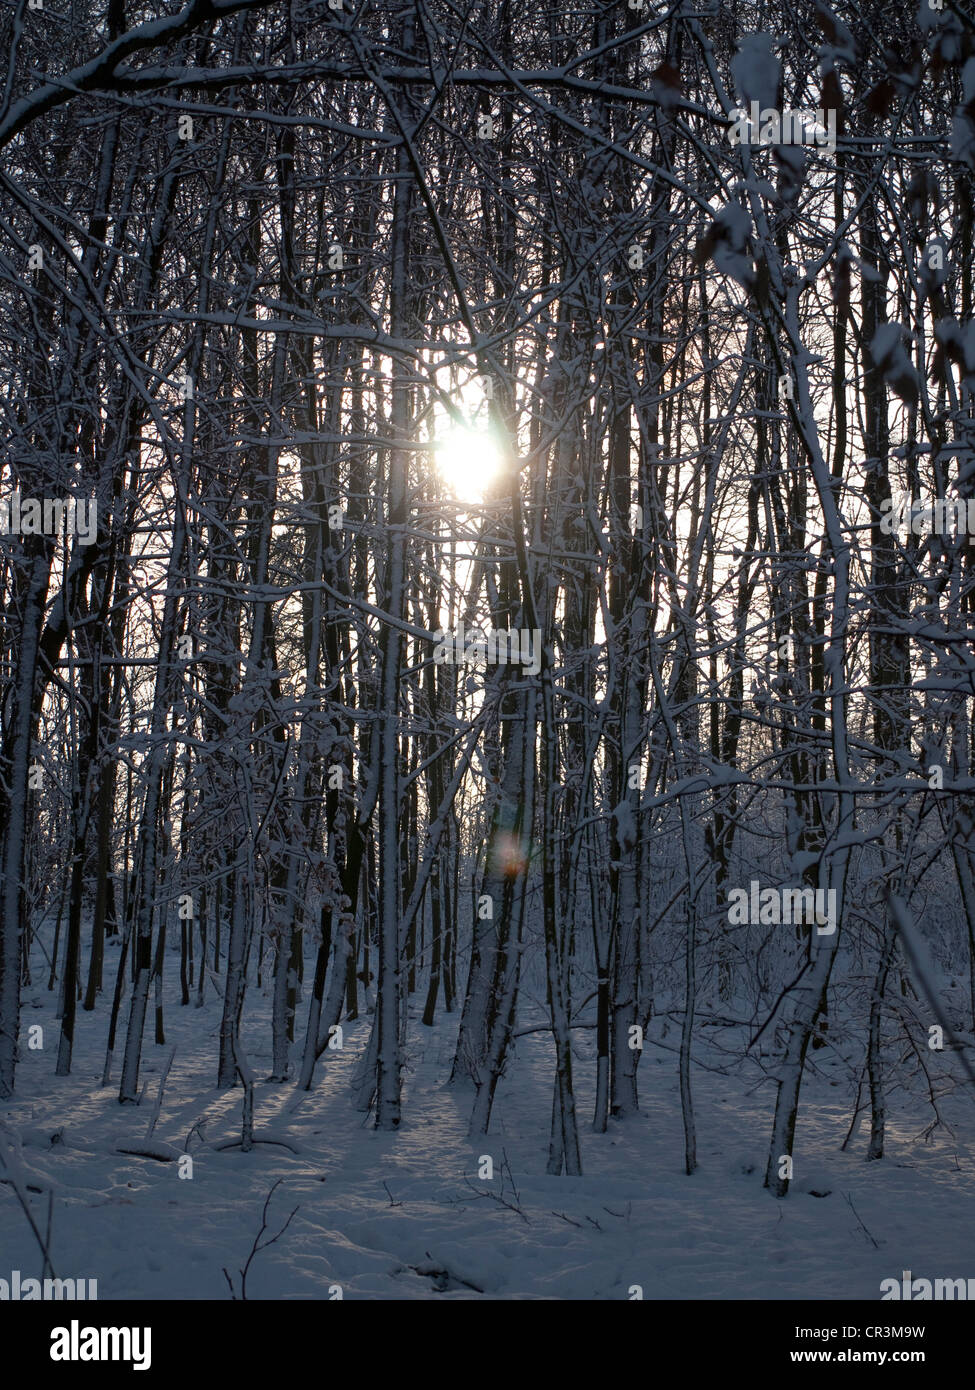 Snow-covered forest, Gysenberg, Herne, Ruhr Area, Germany, Europe - Stock Image